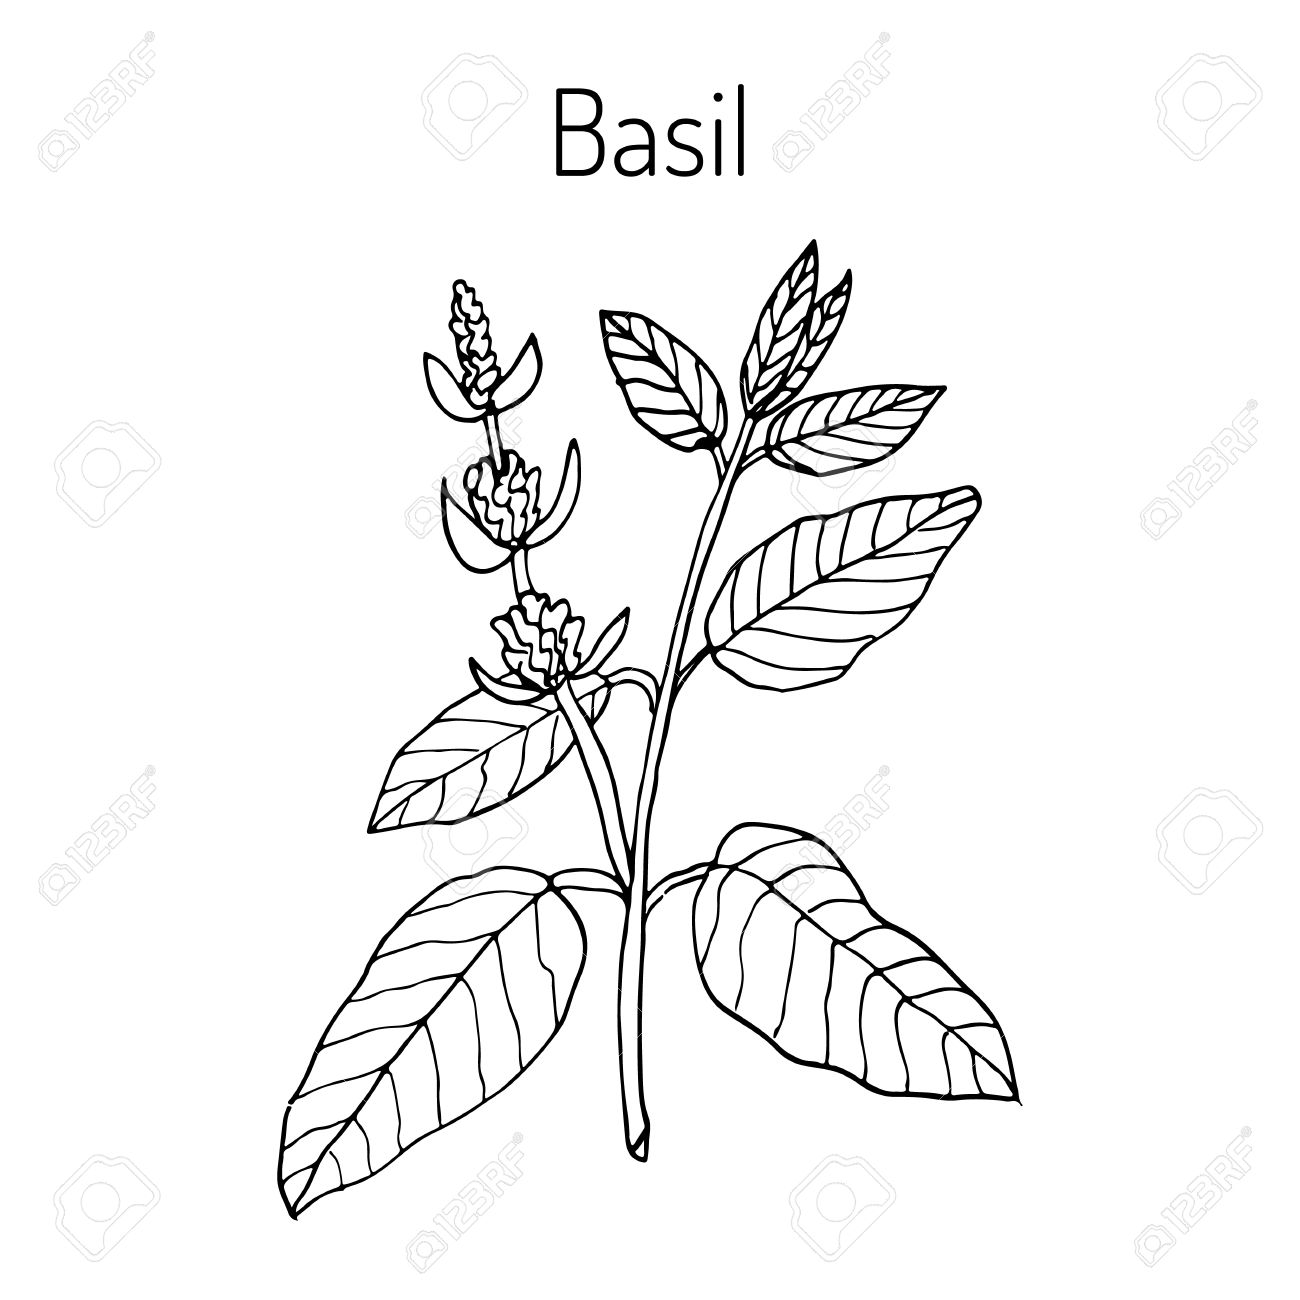 1300x1300 Basil, Thai Basil, Or Sweet Basil, Culinary And Aromatic Herb